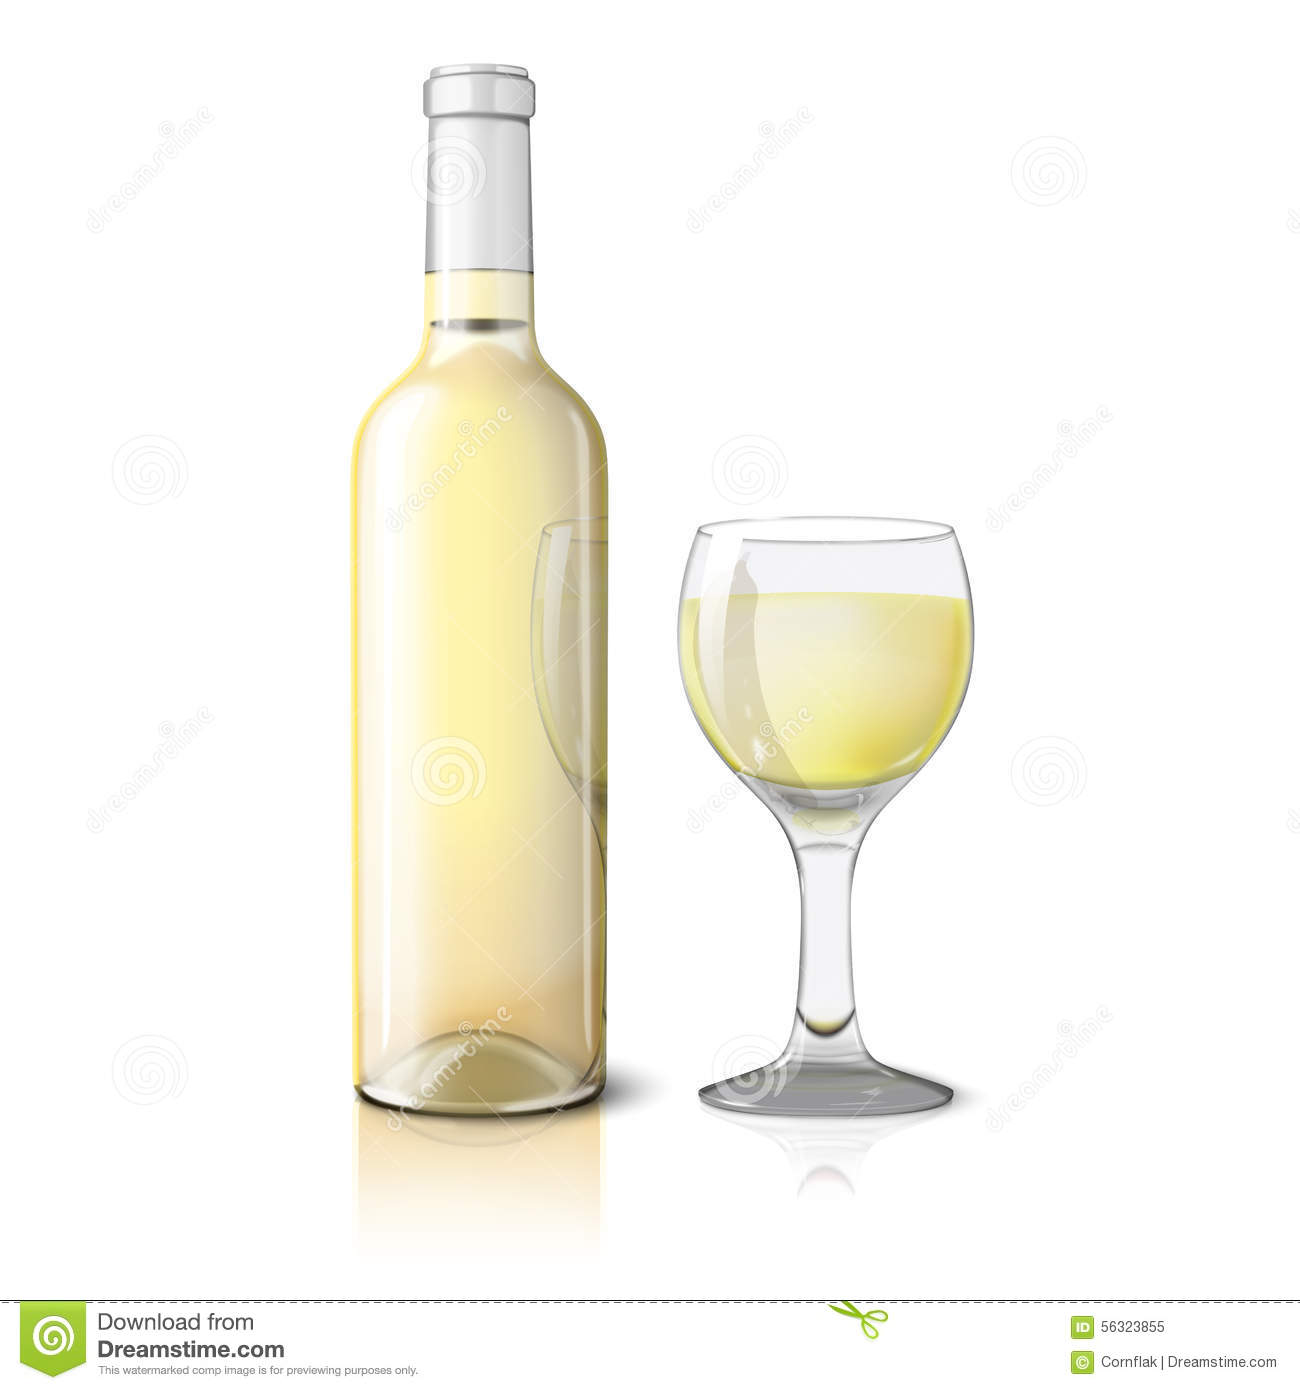 Blank Realistic Bottle For Wine With Glass Stock Vector ...